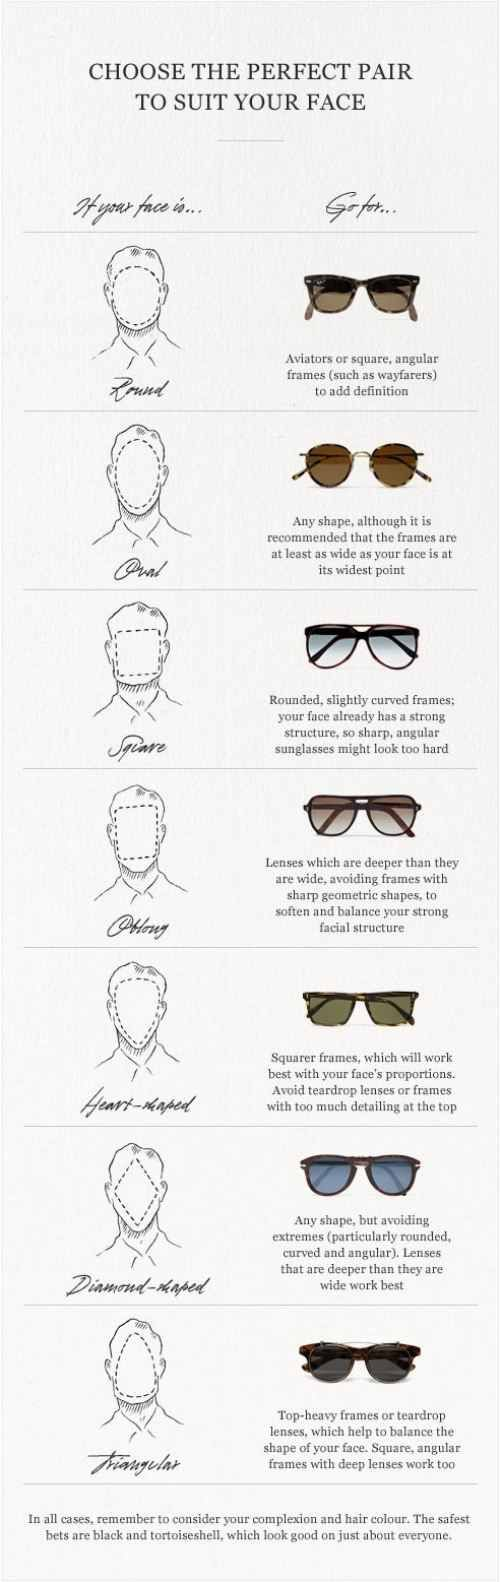 SHARP DRESSED MEN: The Perfect Pair of Sunglasses for Every Face Type @VolteDesign | #luxury #fashion #style #sartorial #accessories #design |